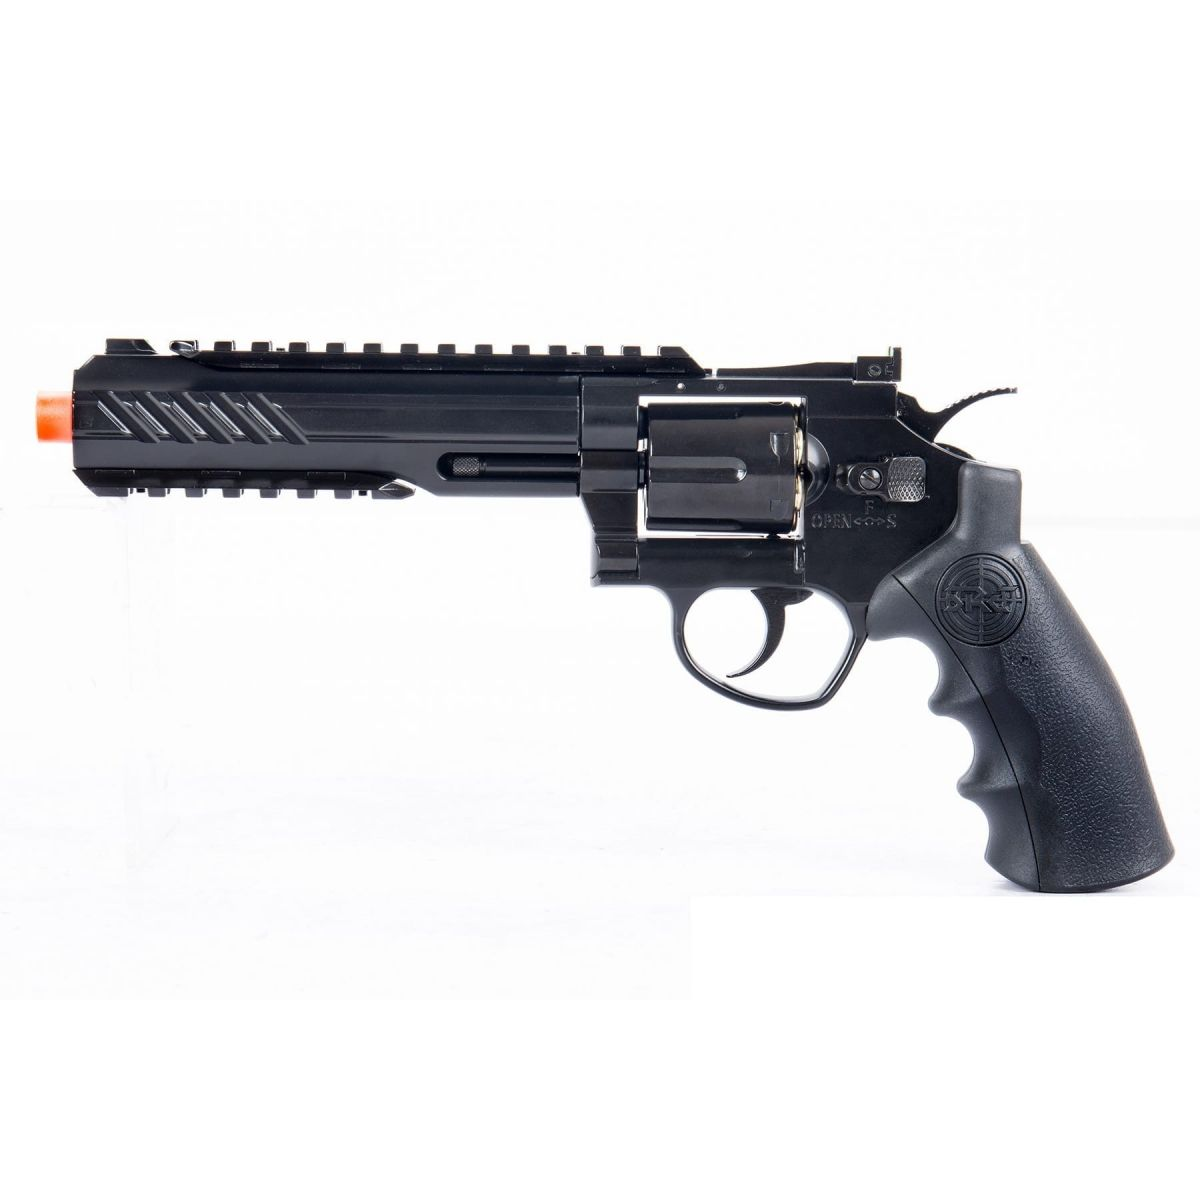 SRC 6 INCH TITAN FULL METAL CO2 AIRSOFT REVOLVER texas cowboy